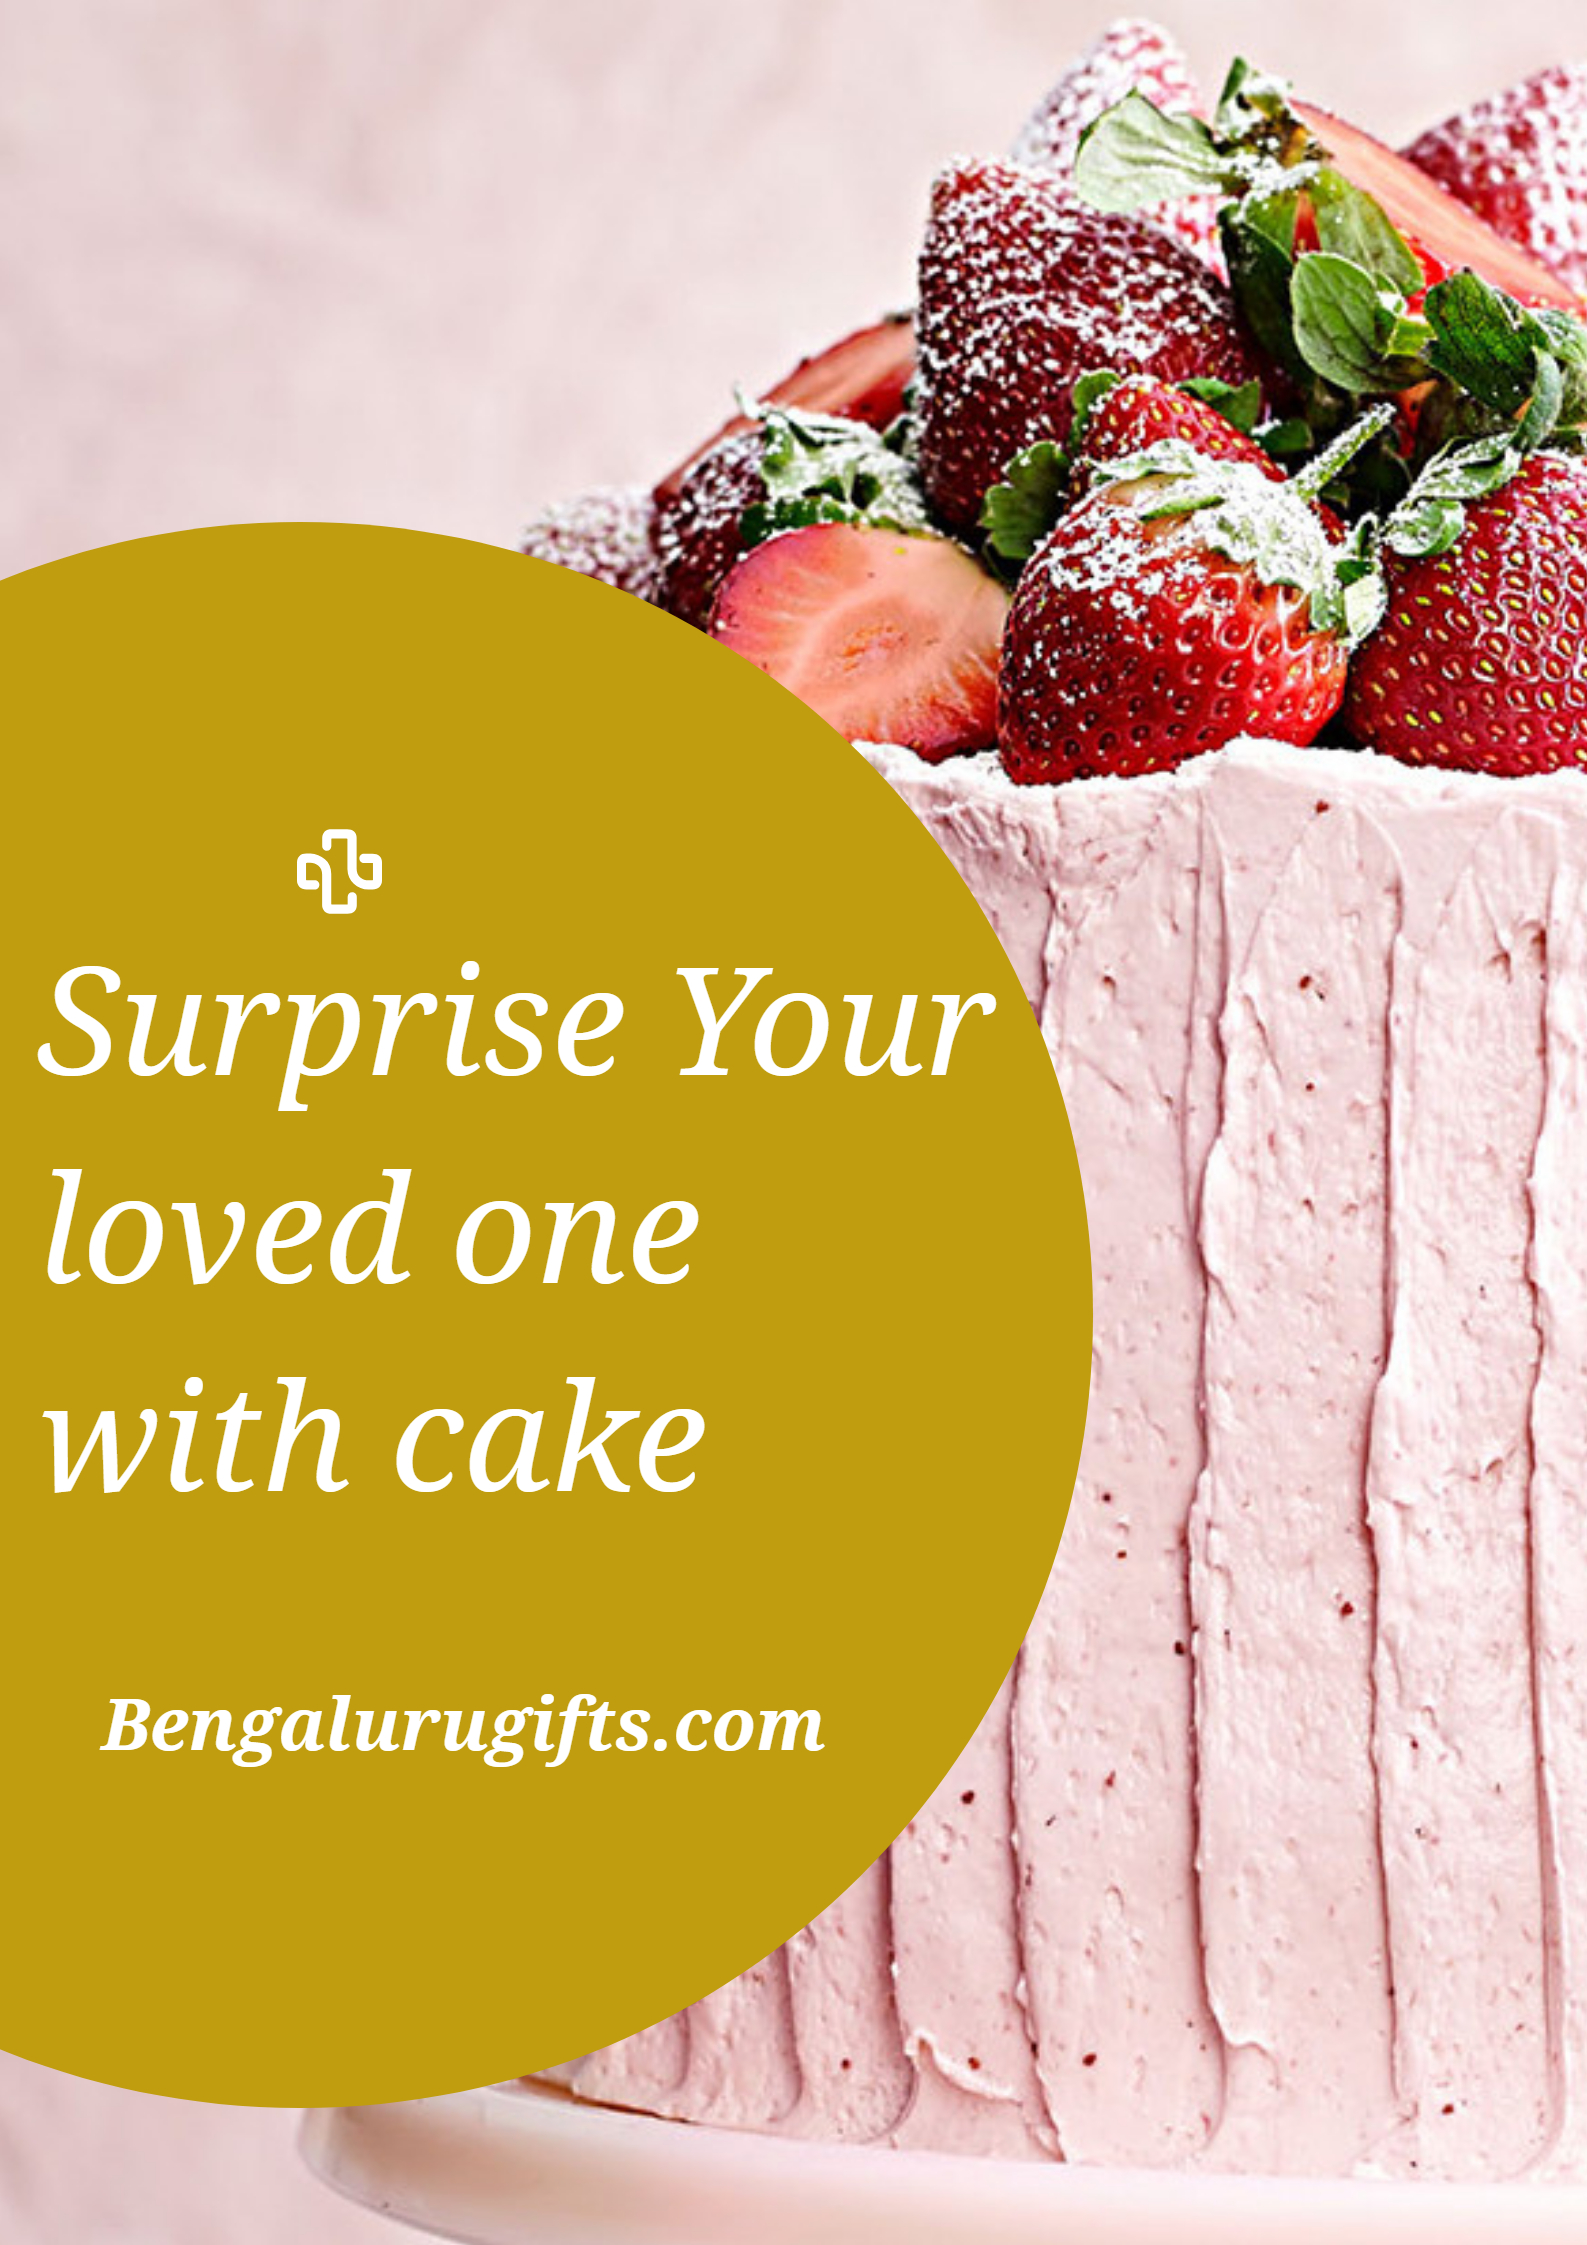 Is The Birthday Of Your Loved One Nearing Whether It A Anniversary Or Any Festive Occasions Cake Perfect Sweet Gift